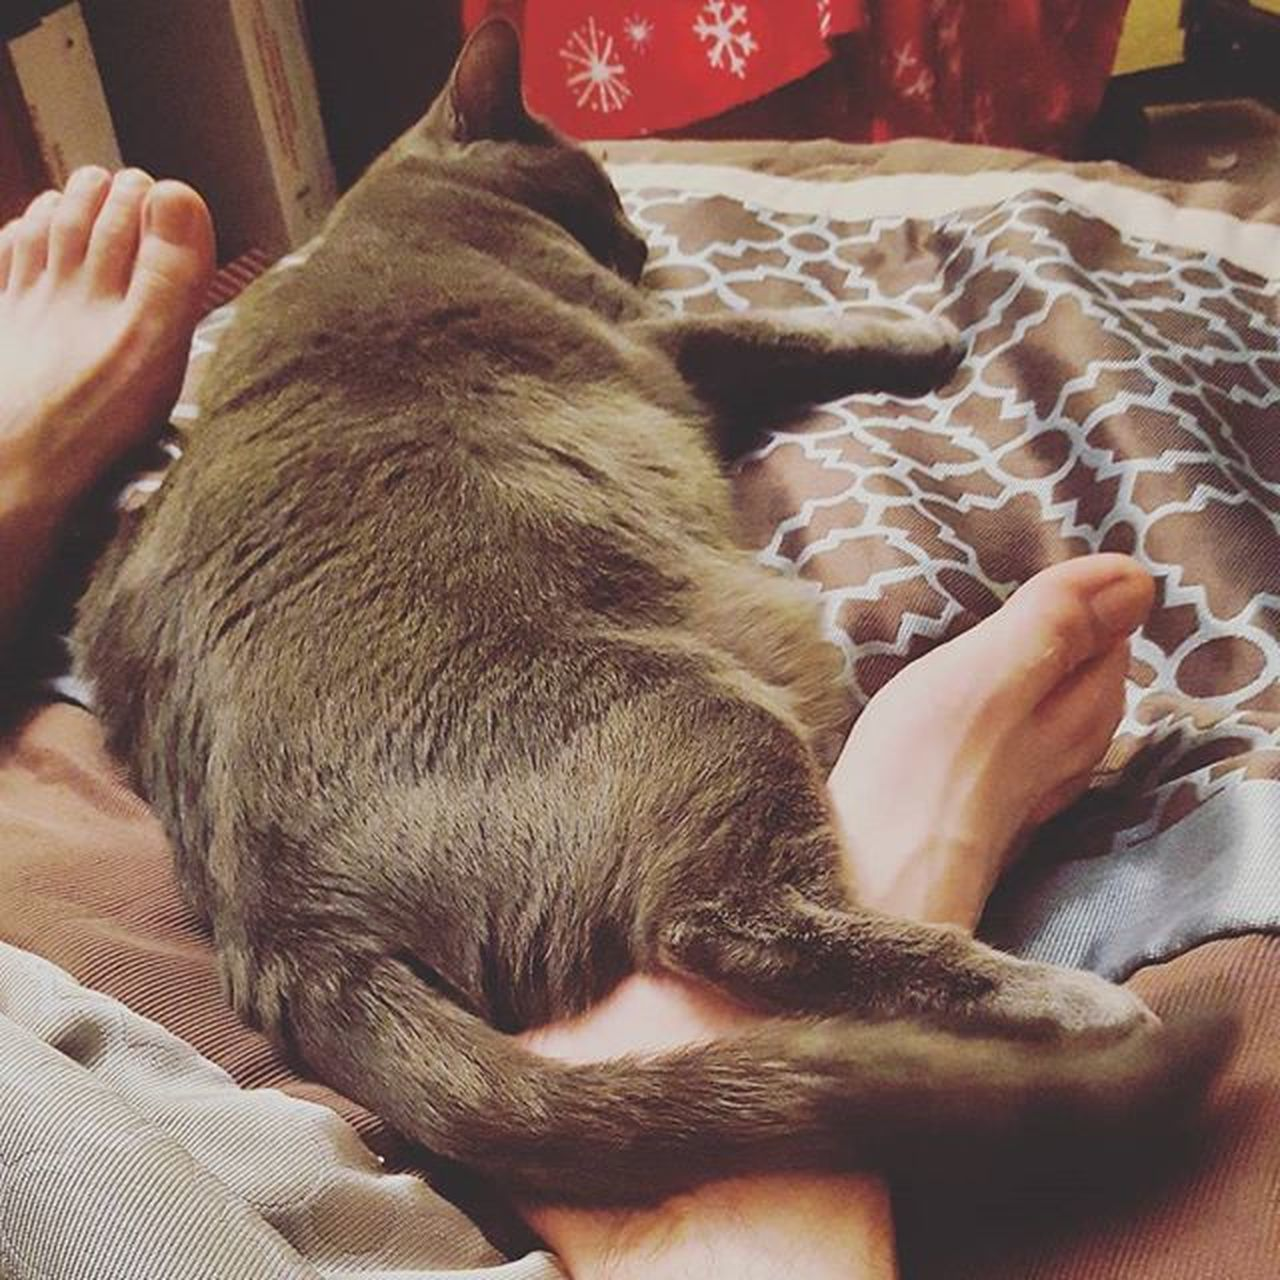 pets, mammal, indoors, domestic animals, relaxation, domestic cat, bed, one person, real people, one animal, home interior, comfortable, human body part, human hand, animal themes, low section, day, people